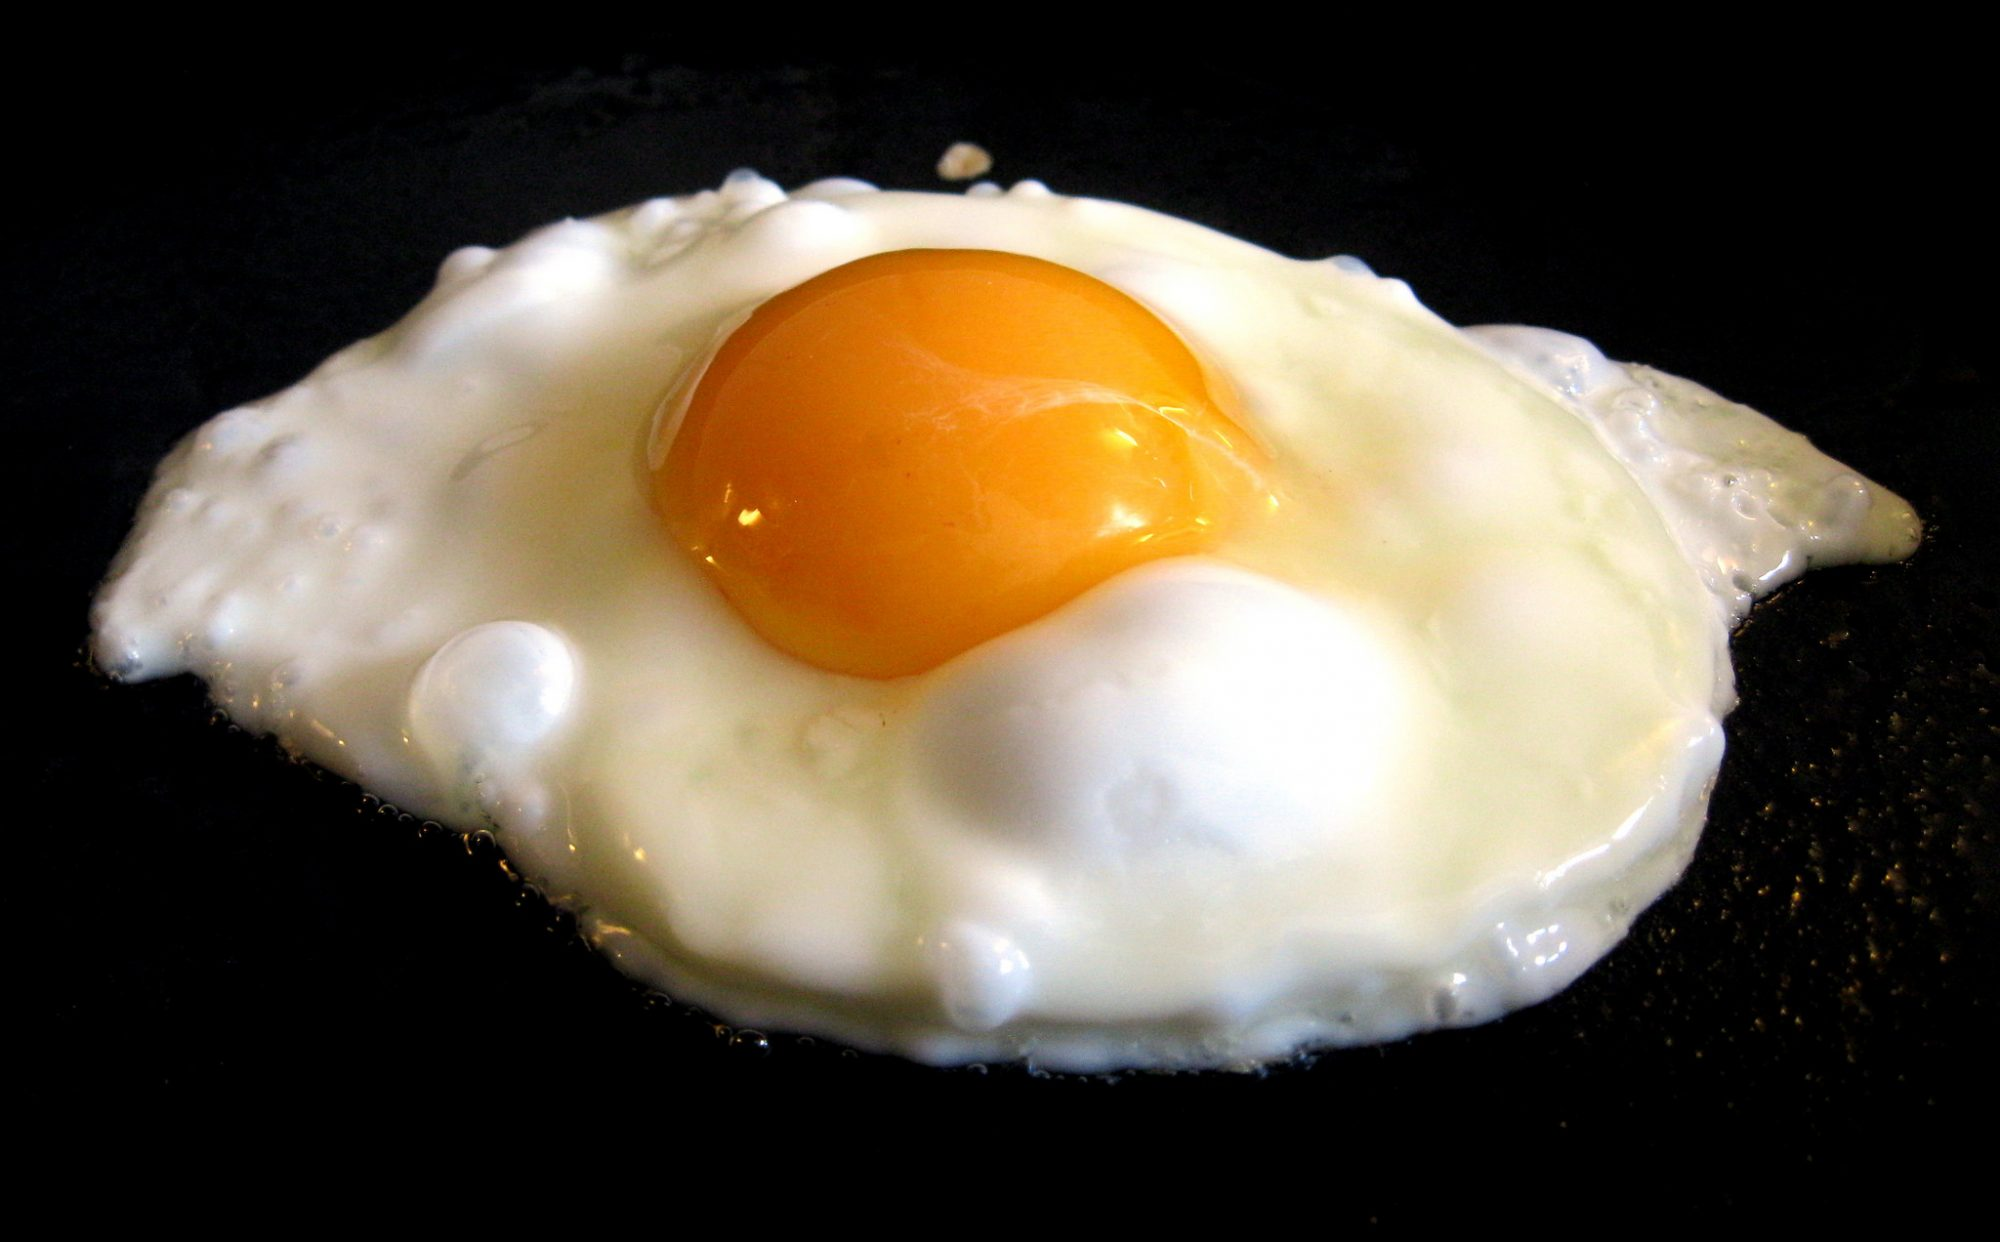 EC: No, Eggs Are Not As Bad As Cigarettes